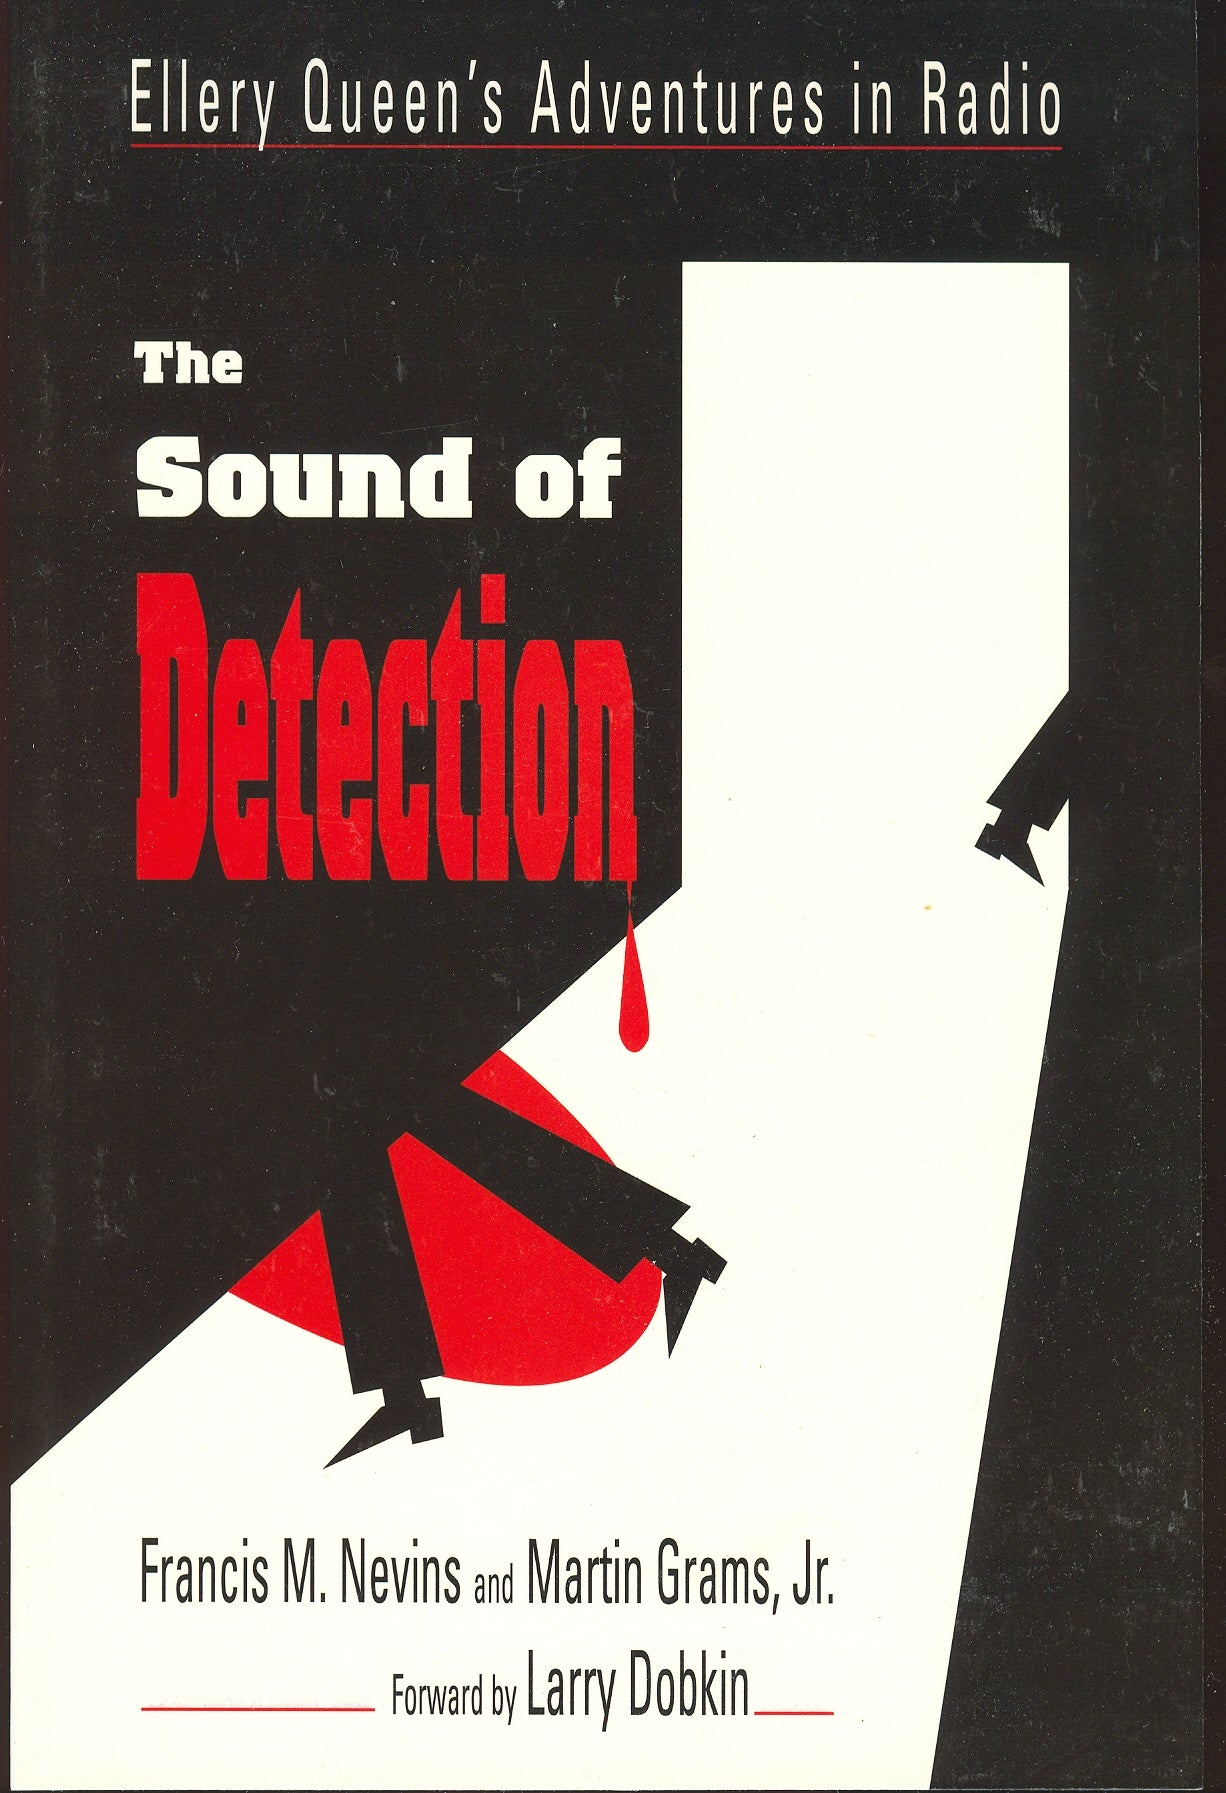 THE SOUND OF DETECTION: The Radio Adventures of Ellery Queen